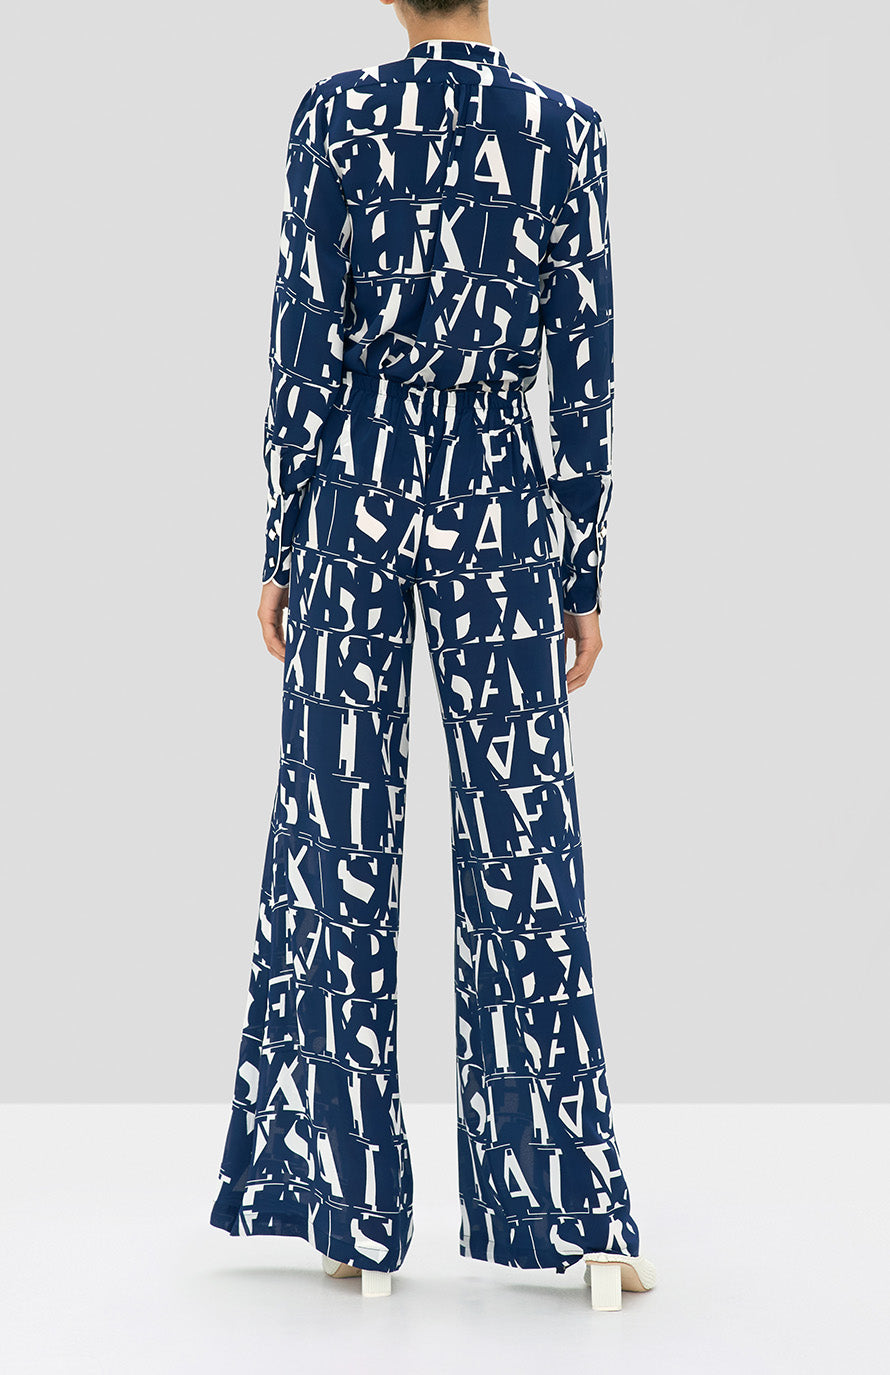 Alexis Dotson Top and Goda Pant in Navy Print from the Holiday 2019 Ready To Wear Collection - Rear View